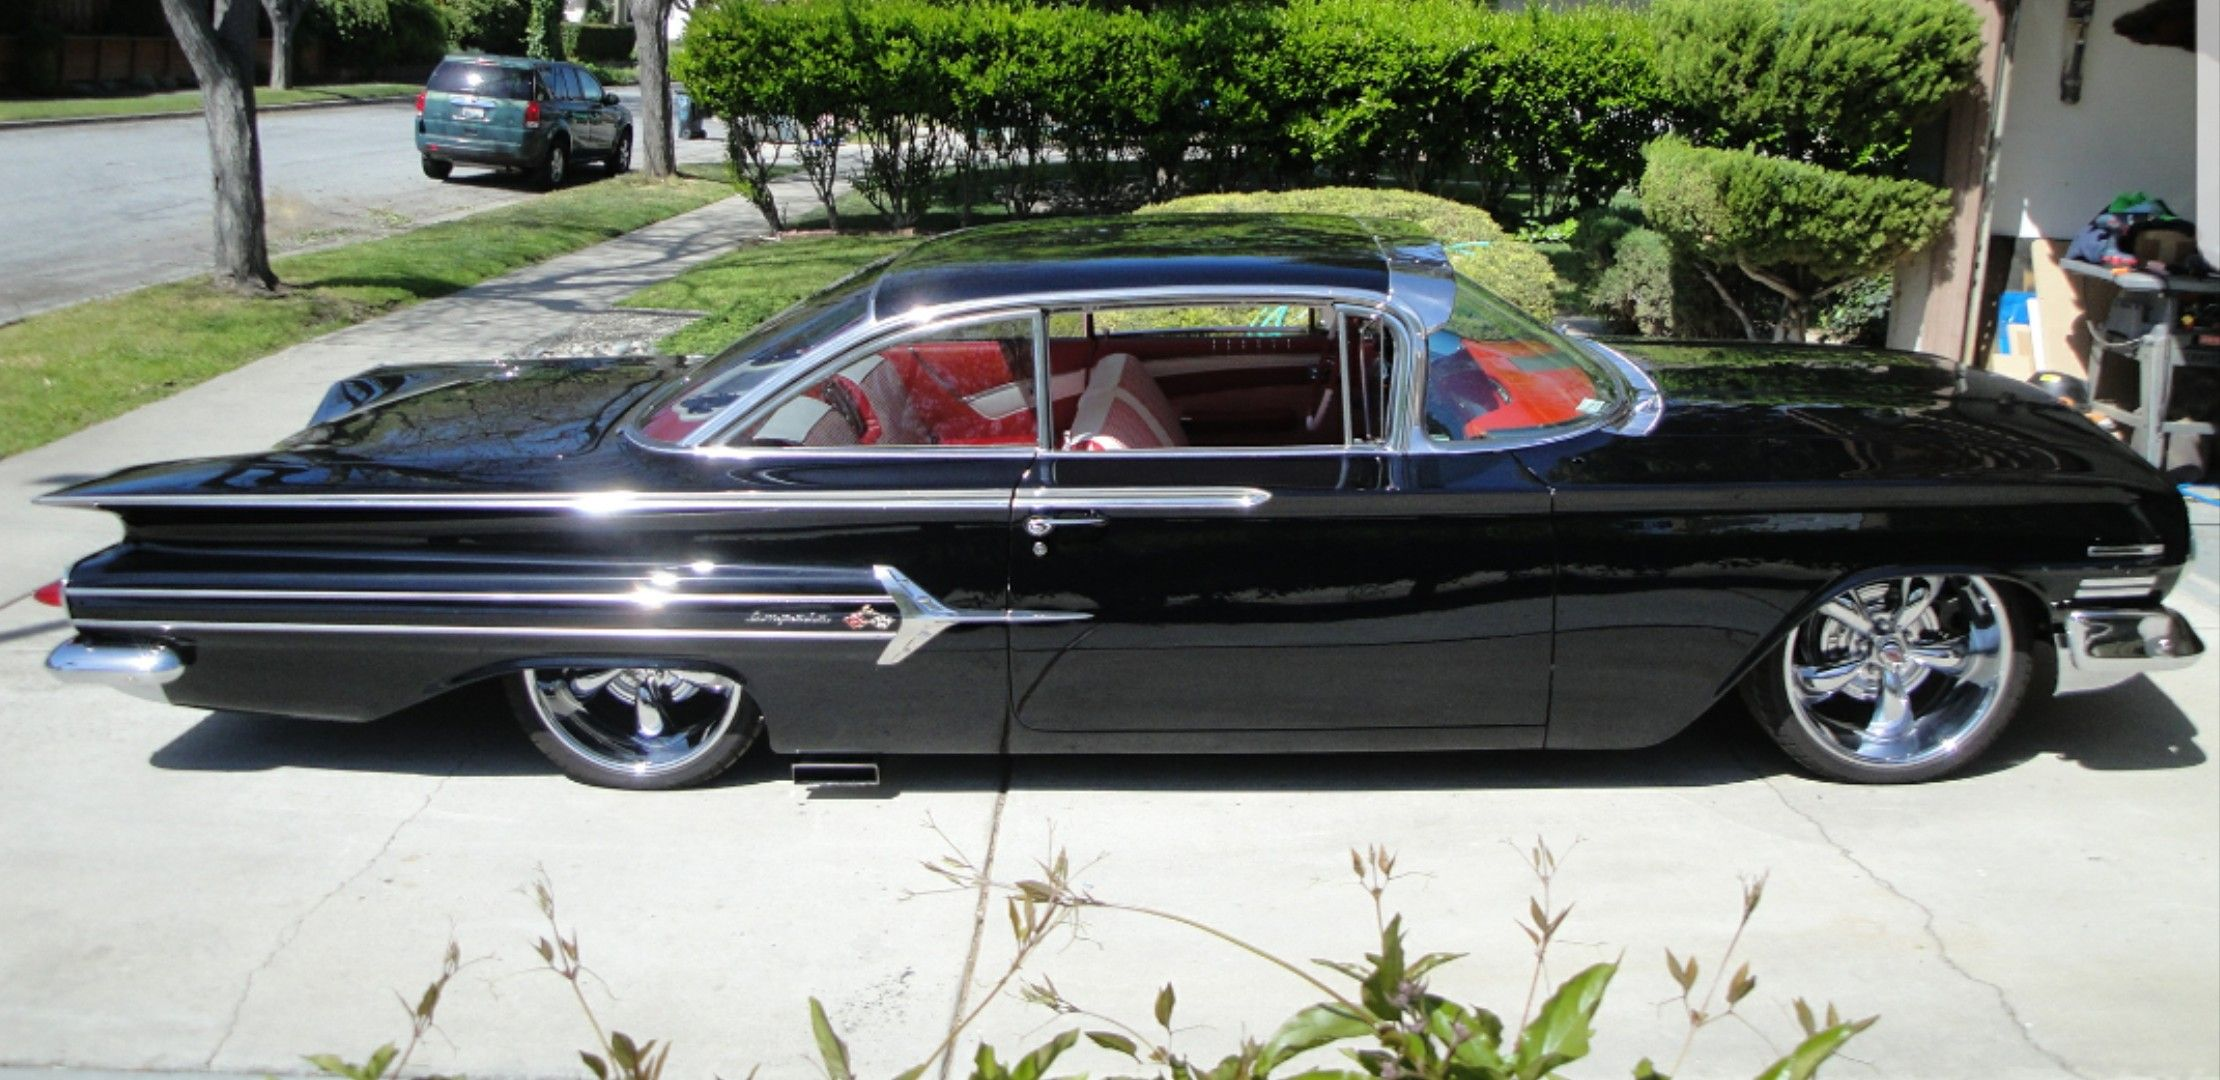 Pin by Mike Camp on 60 impala | Pinterest | Cars, Custom cars and ...